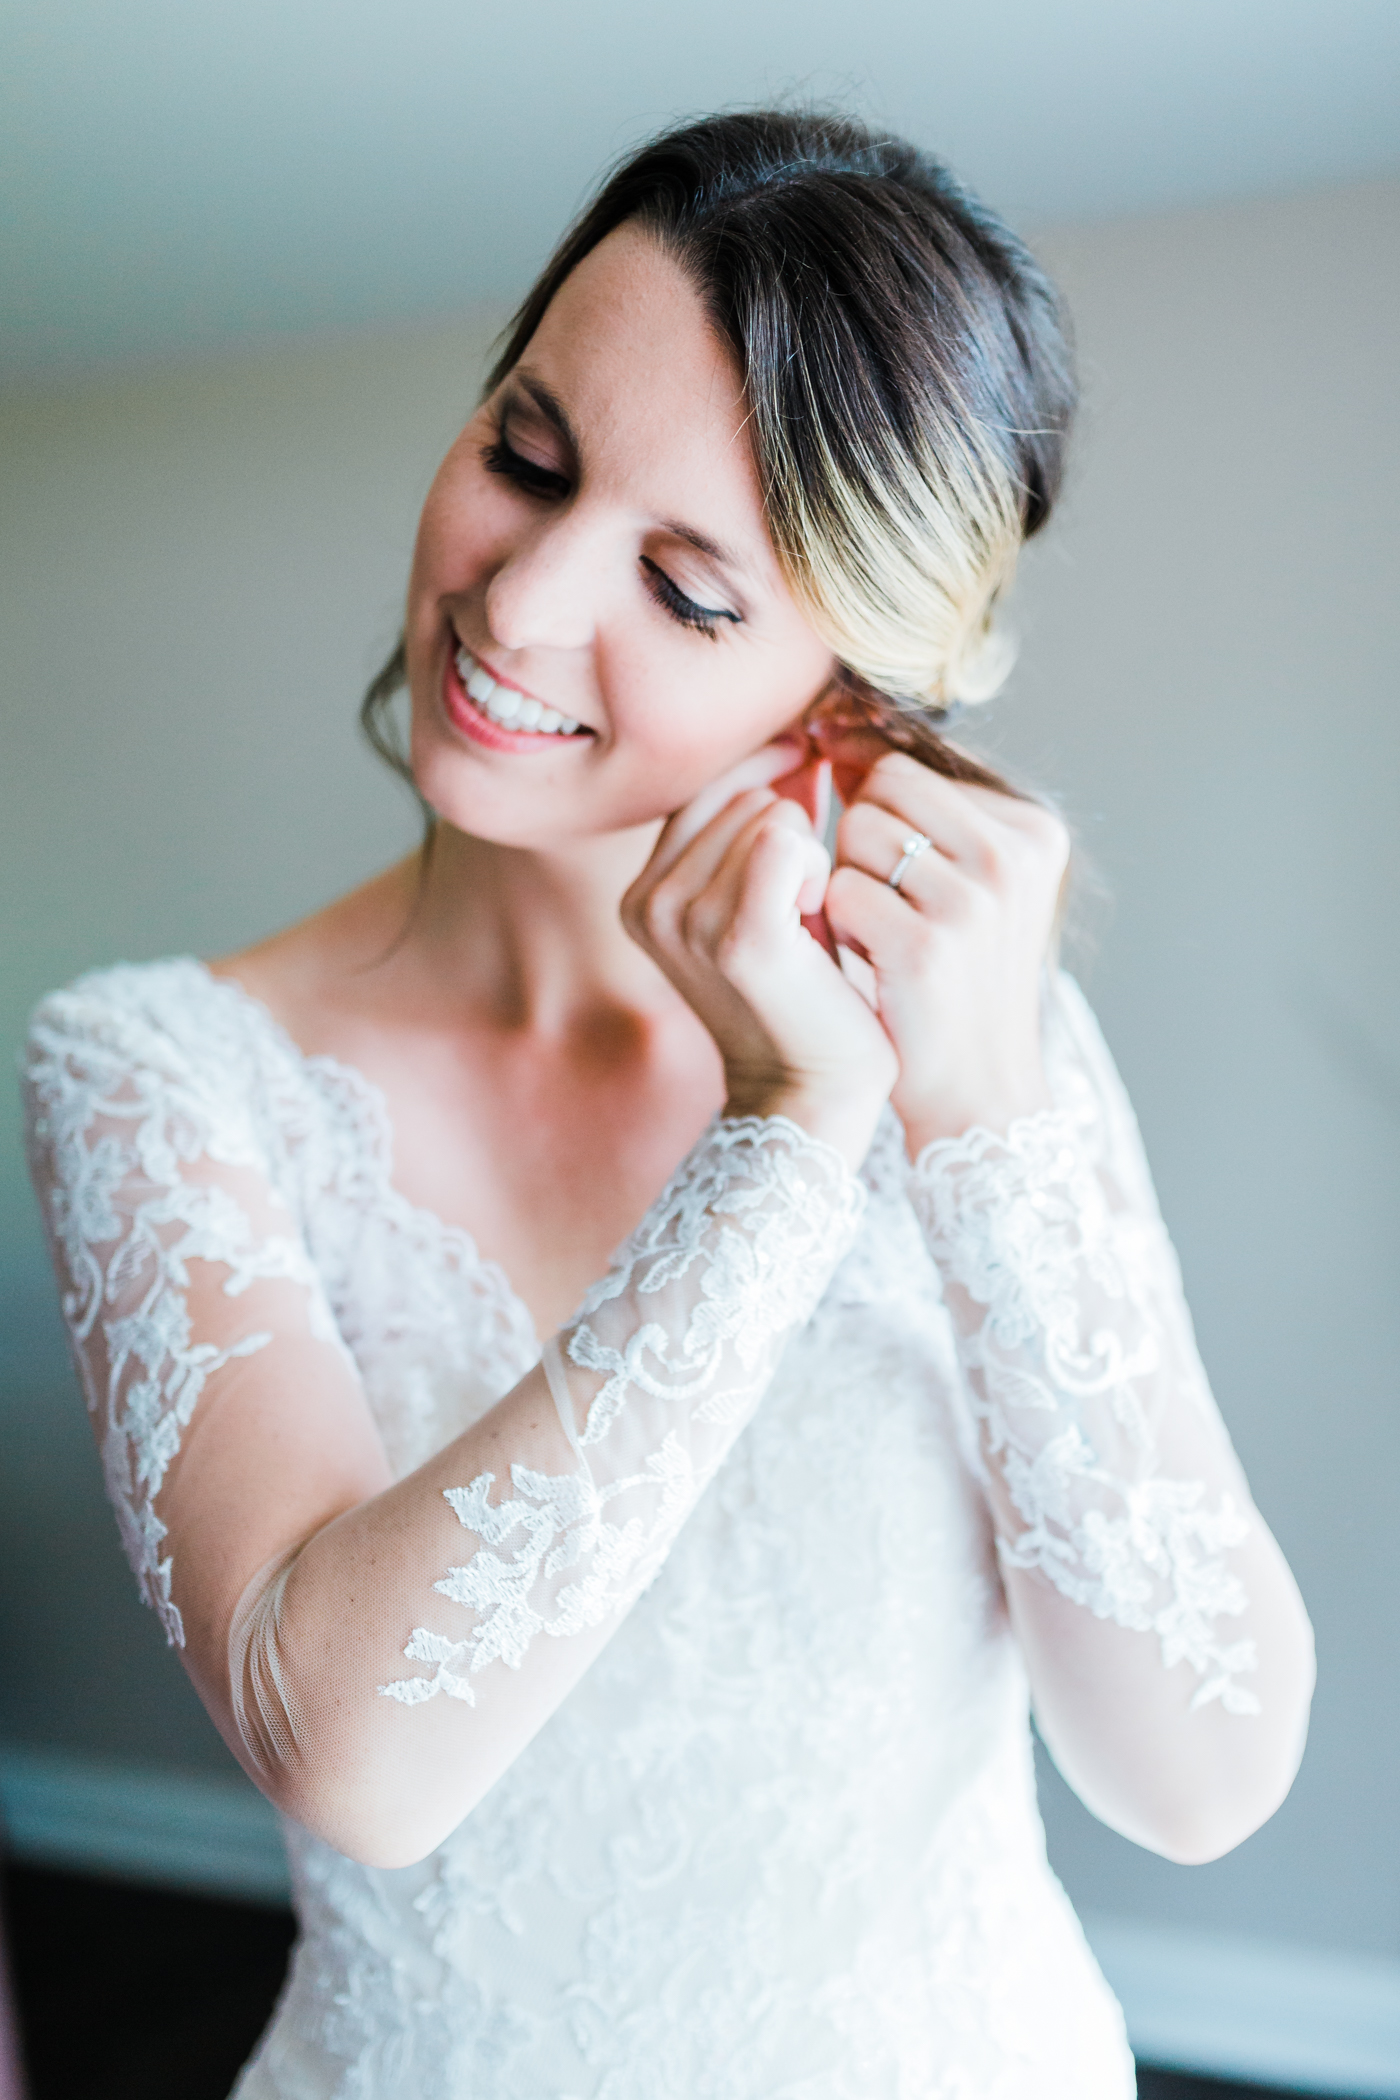 bride putting her earrings on - maryland wedding photographer and cinematographer - husband and wife team